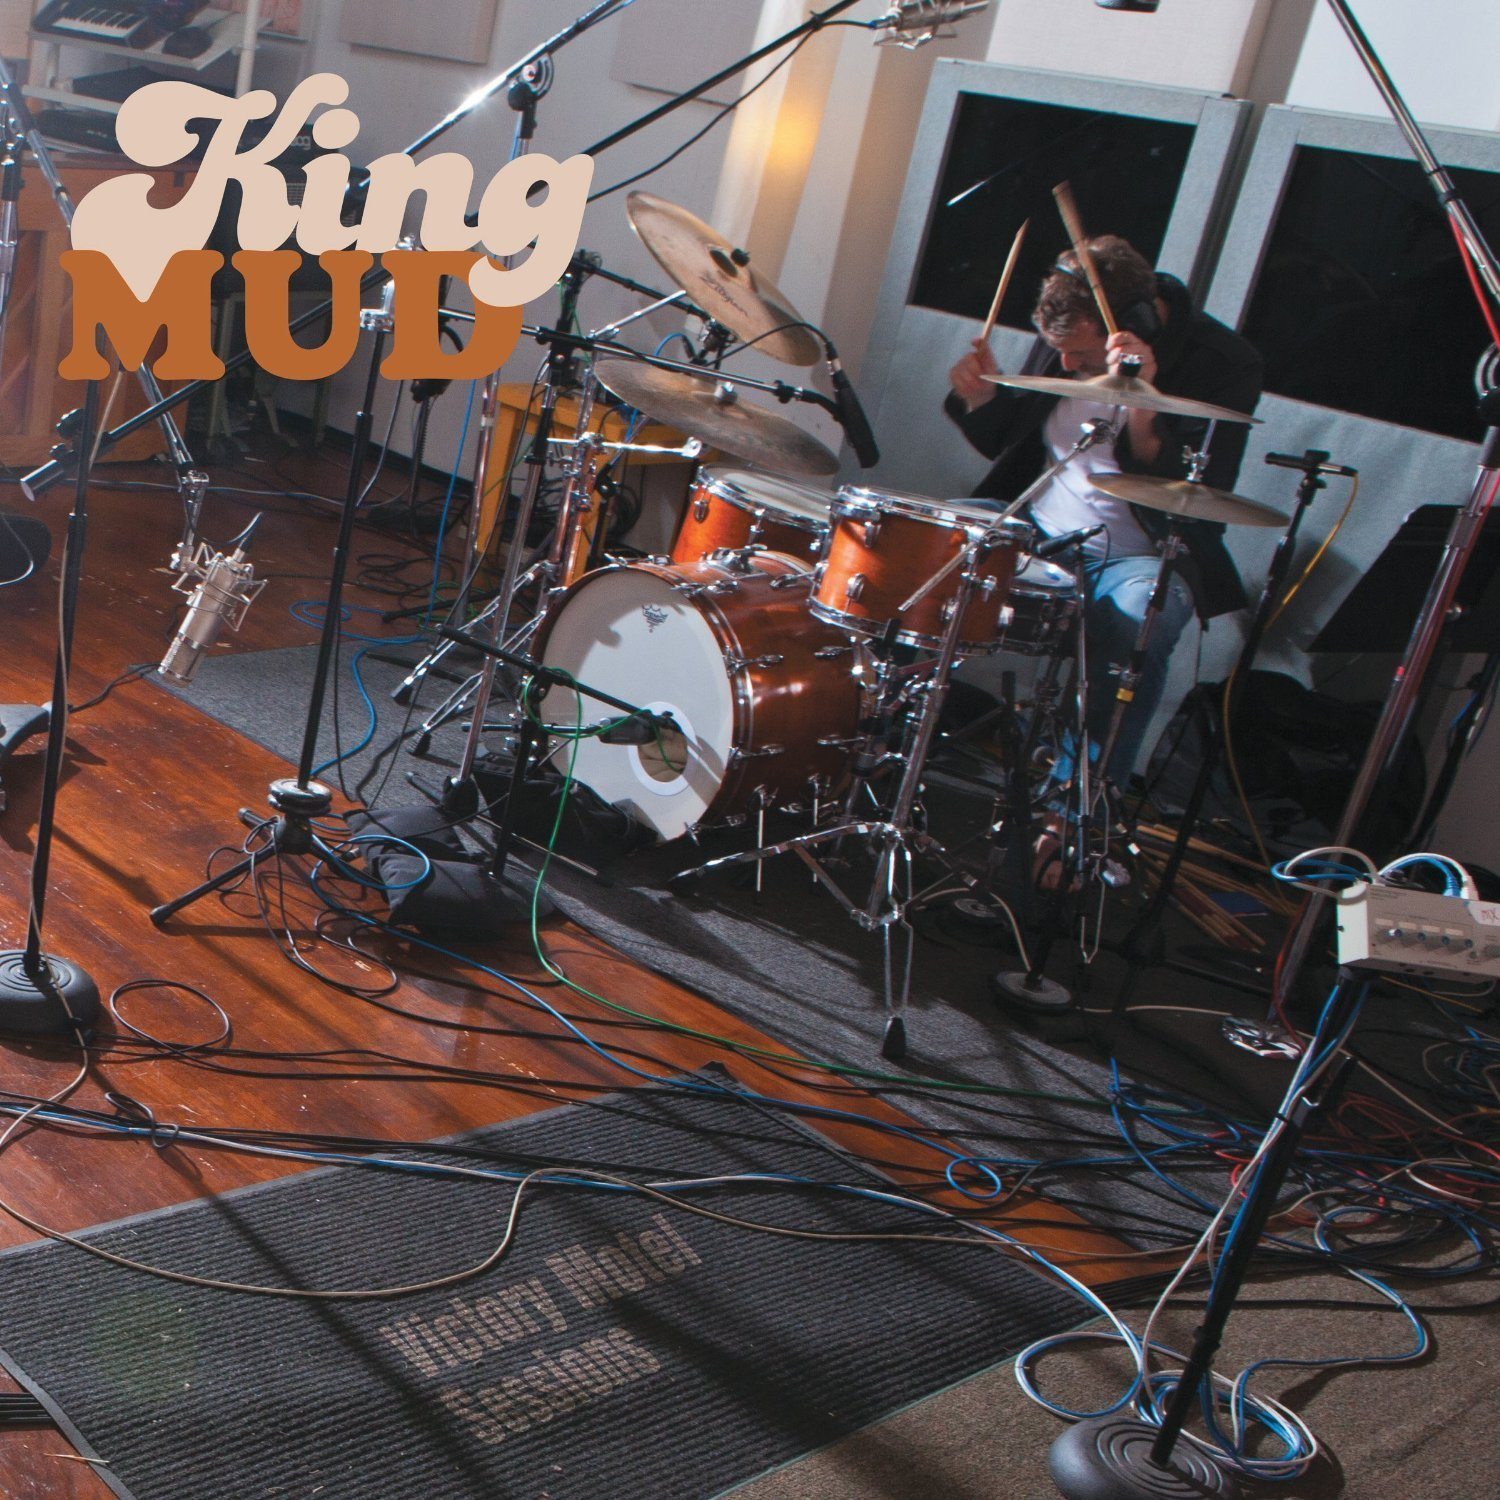 king-mud-victory-motel-sessions